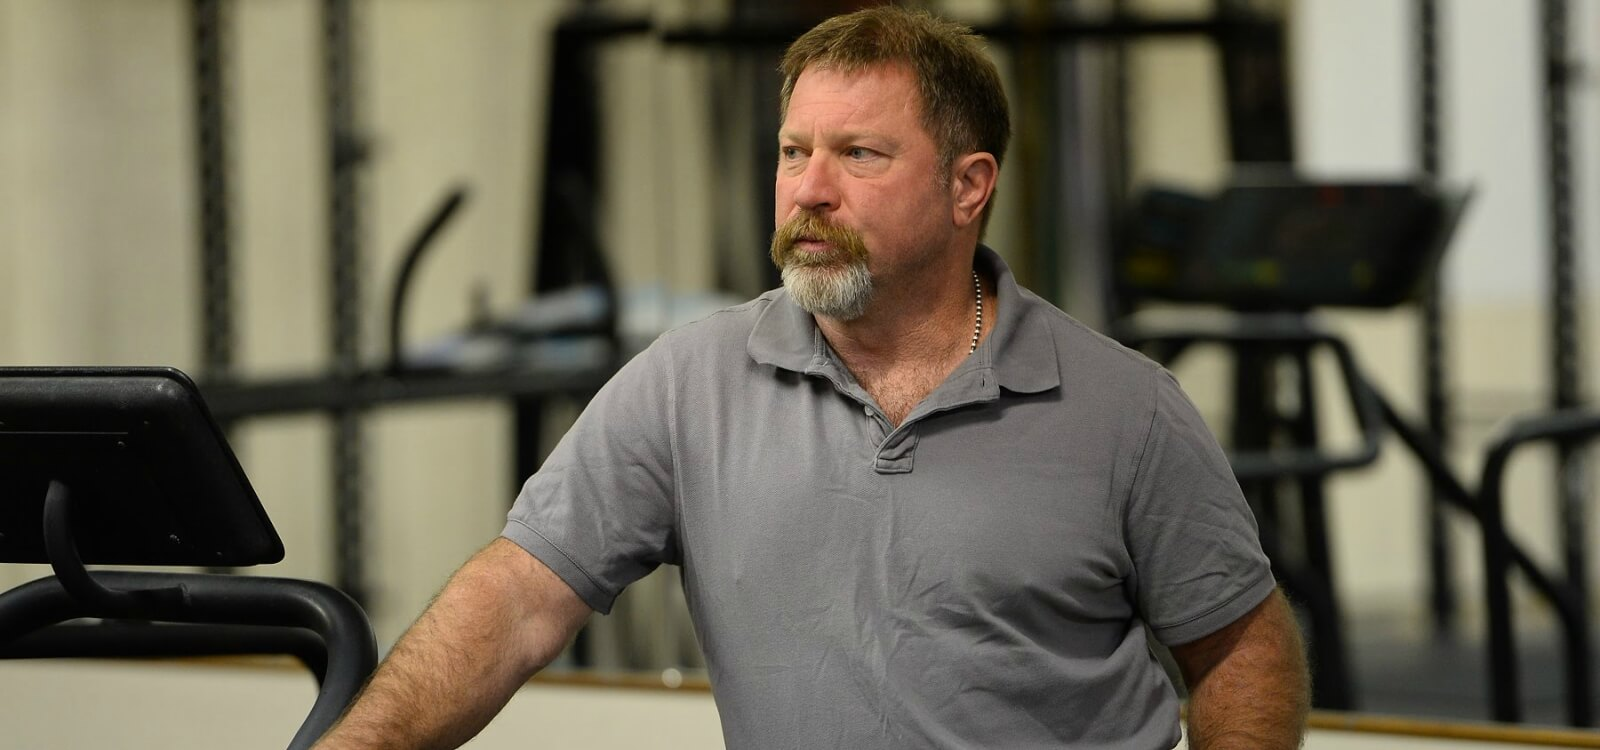 Mark Rippetoe Answers: How Do You Keep Making Gains Past Age 40?